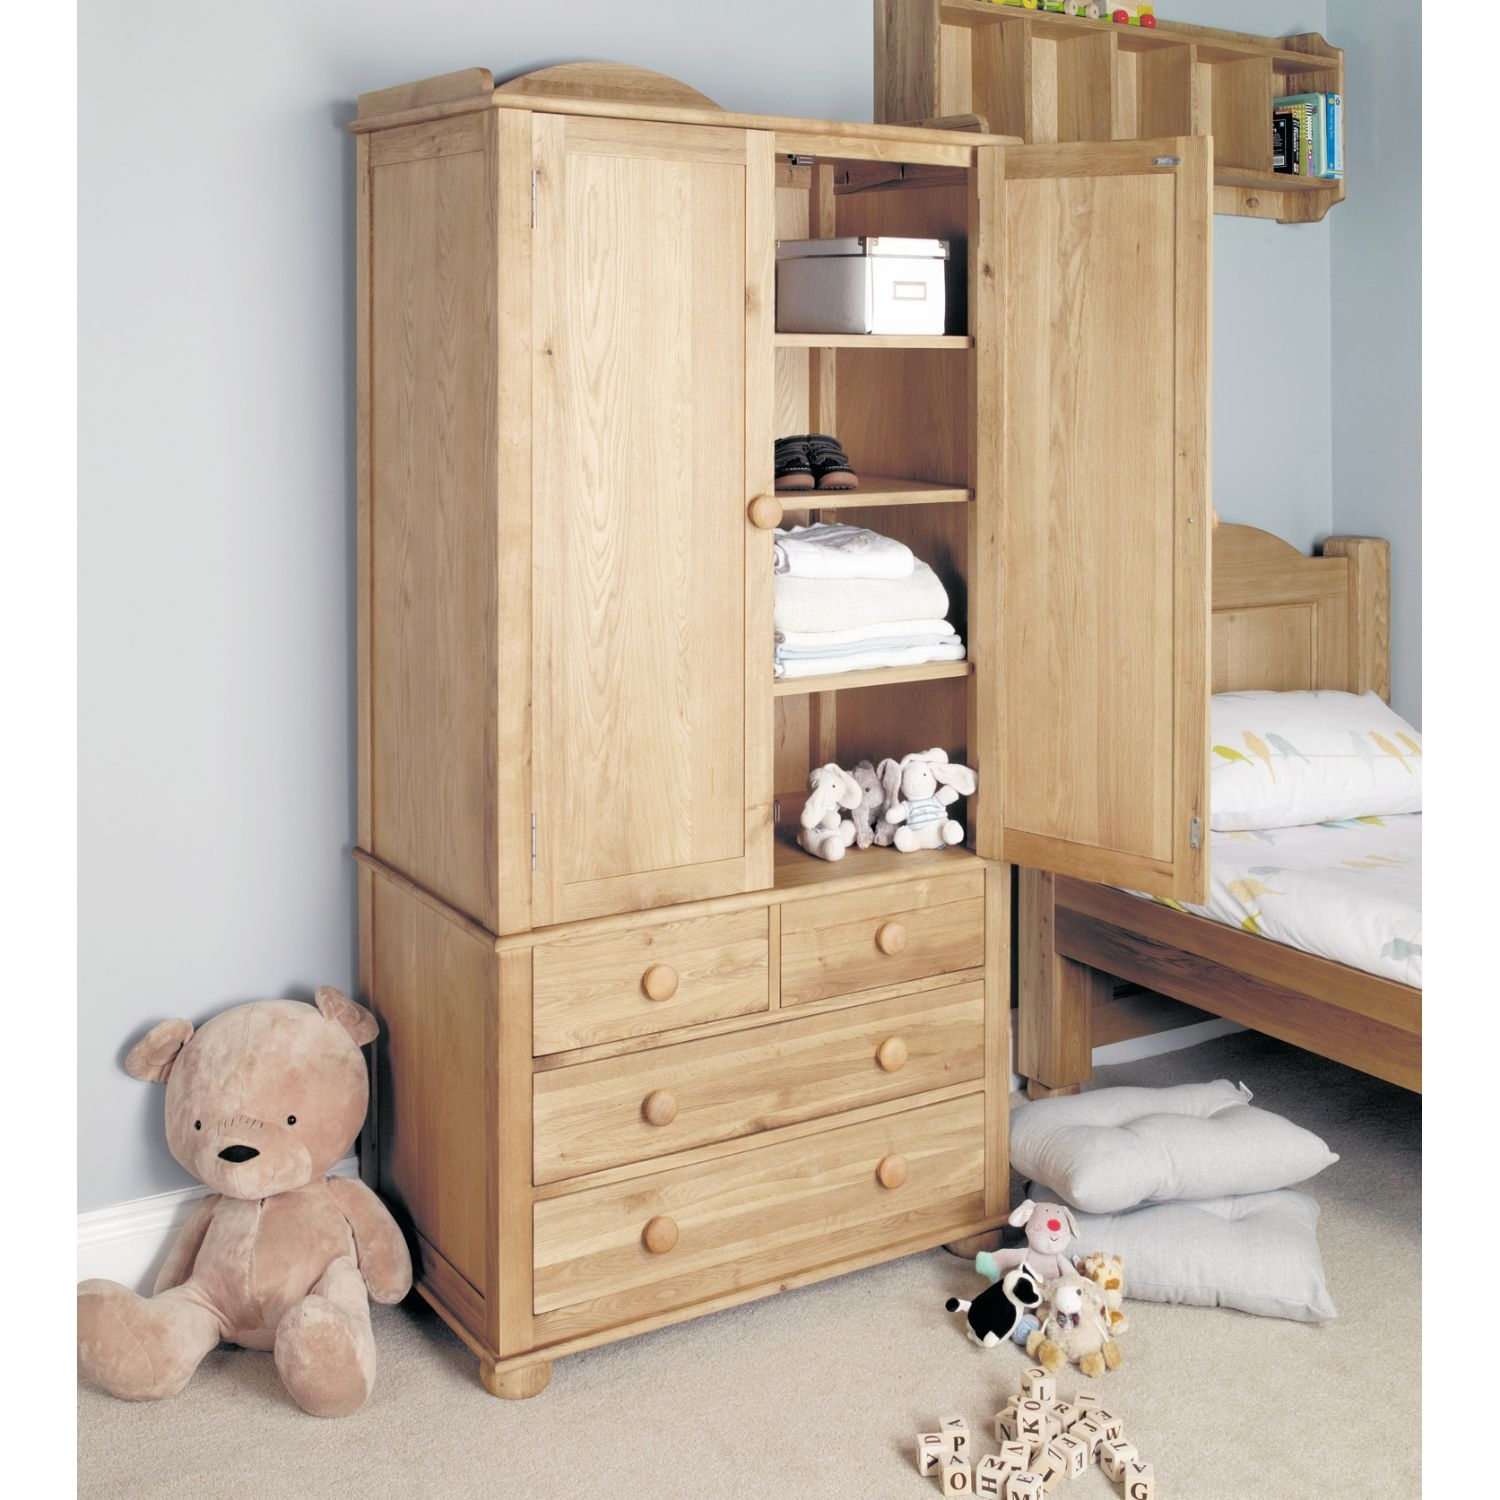 Childrens Wardrobes With Shelves Awesome Interior In Wardrobe With Shelves And Drawers (View 6 of 15)